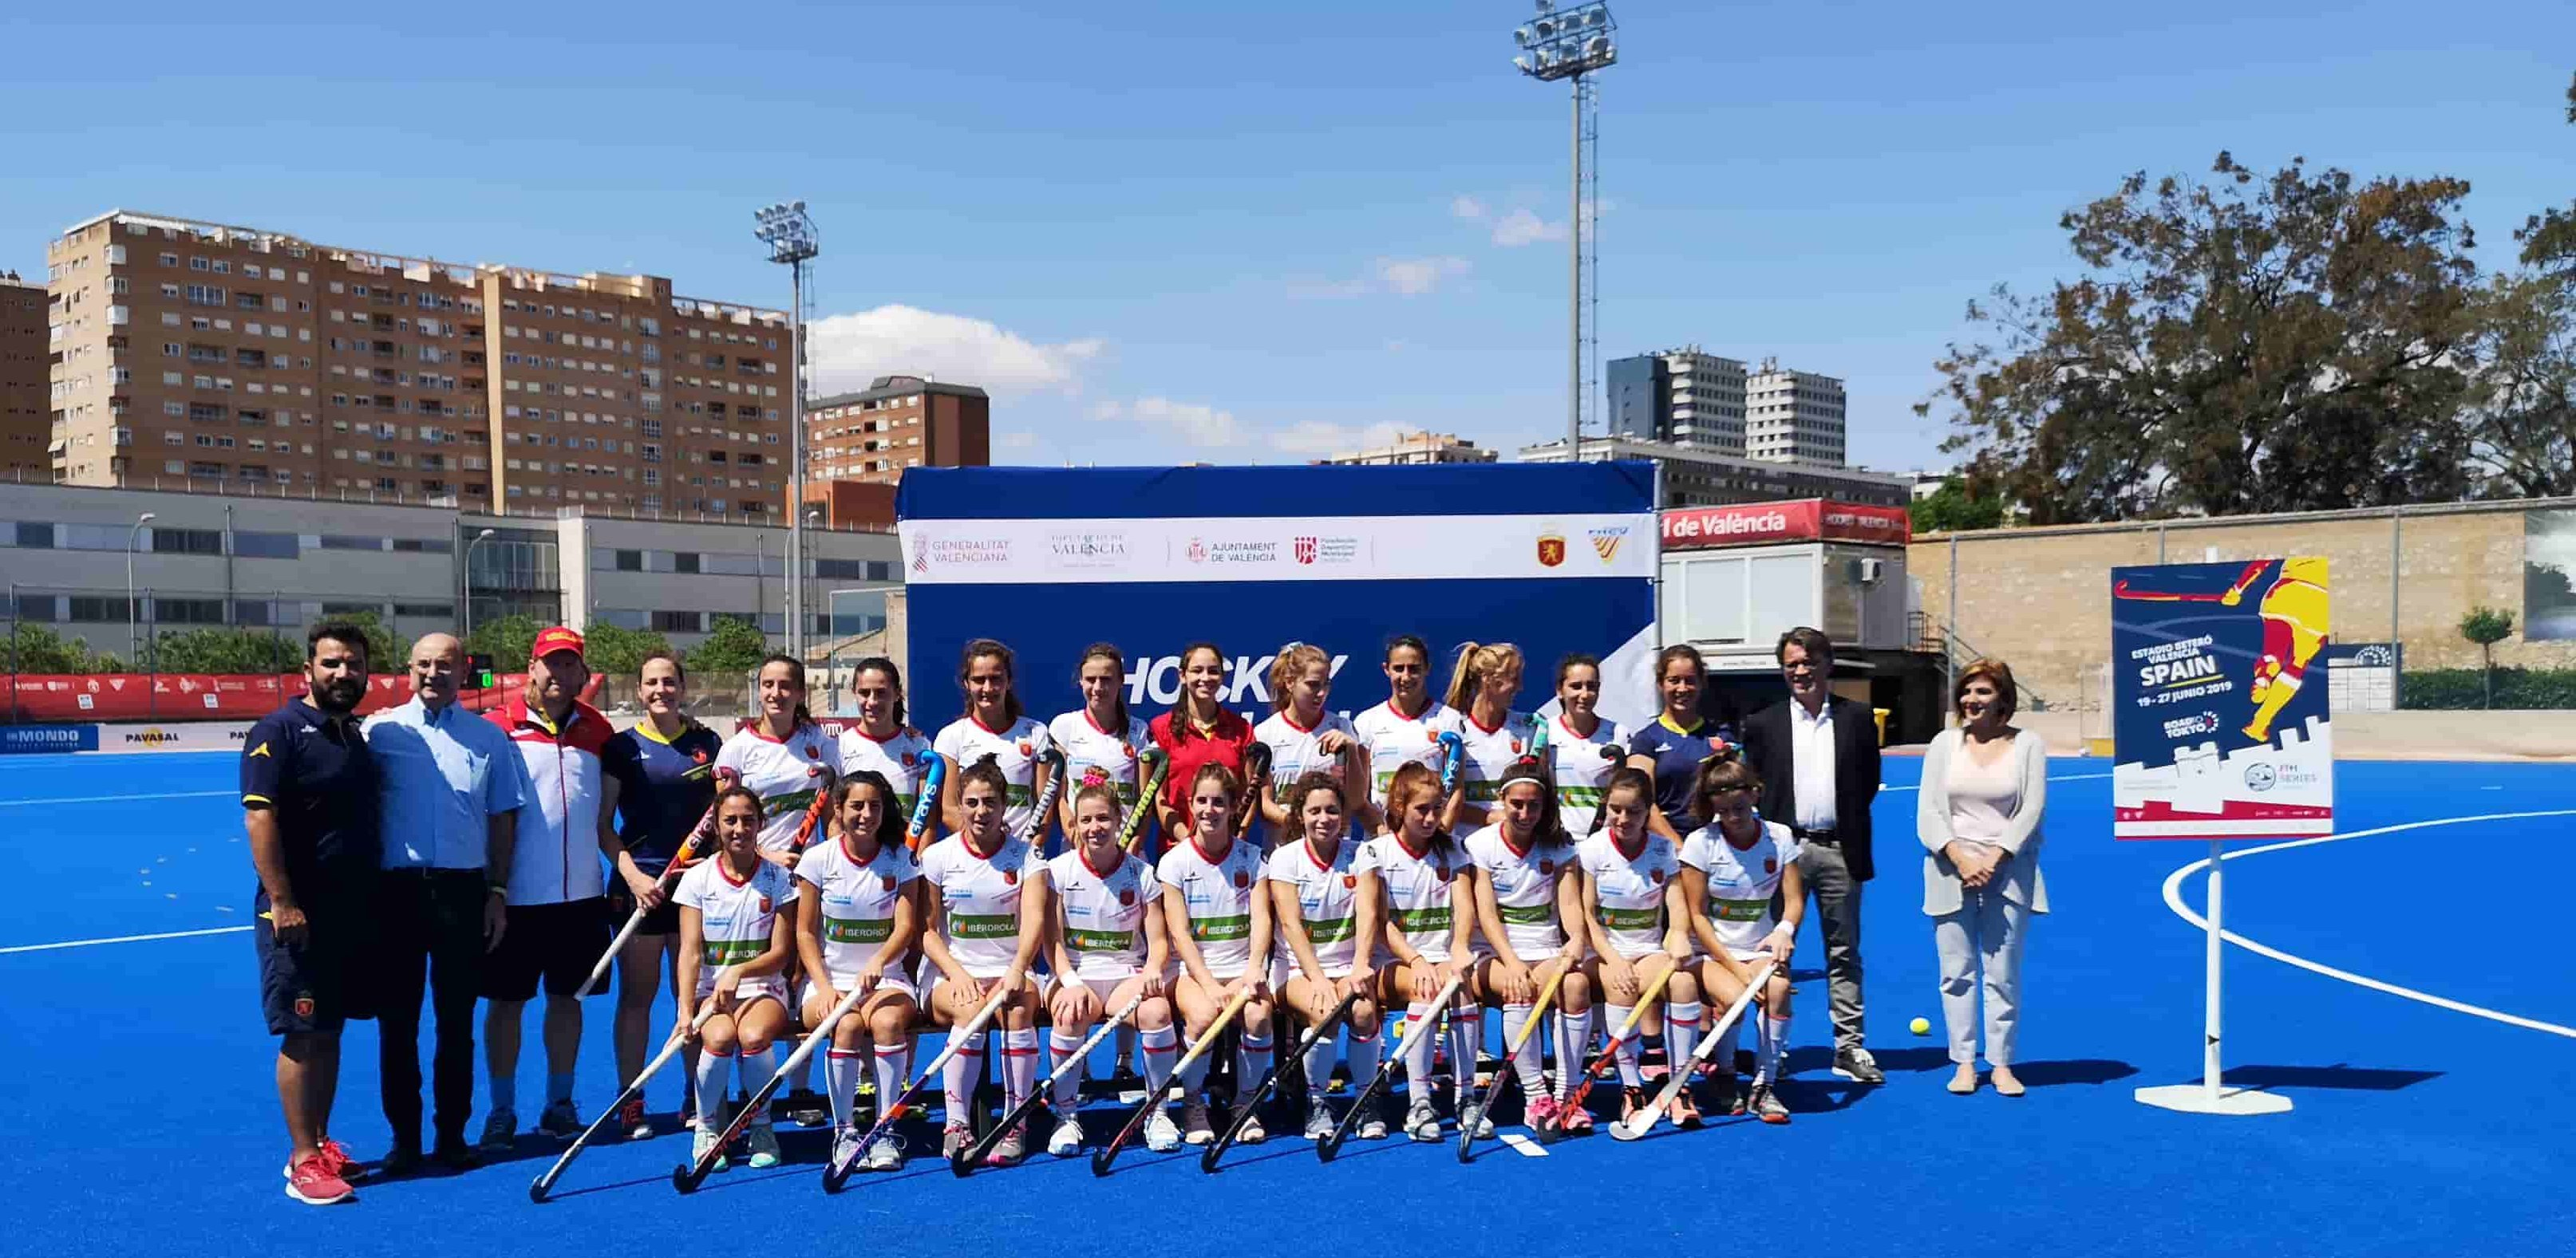 GRAN NOTICIA PARA LA VALÈNCIA HOCKEY SERIES FINAL WOMEN 2019